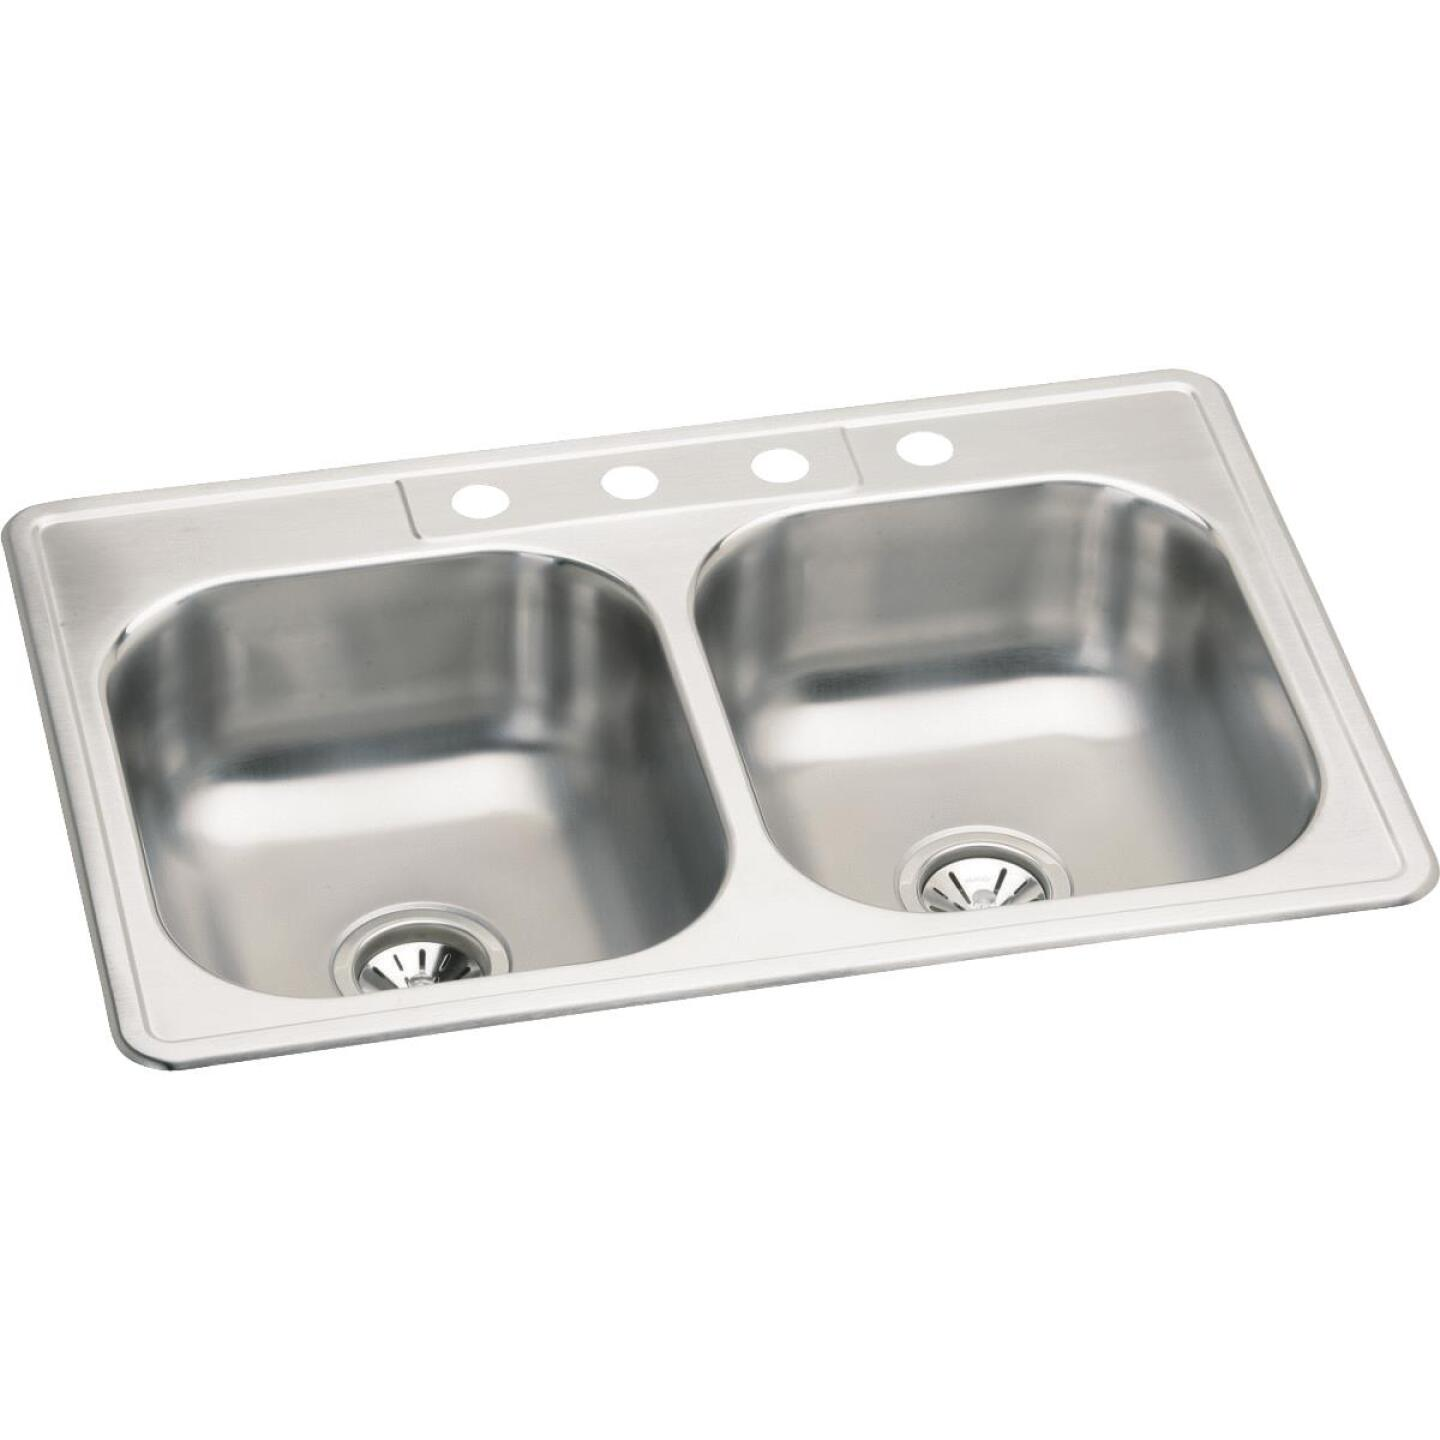 Elkay Double Bowl 33 In. x 22 In. Stainless Steel Kitchen Sink Image 1